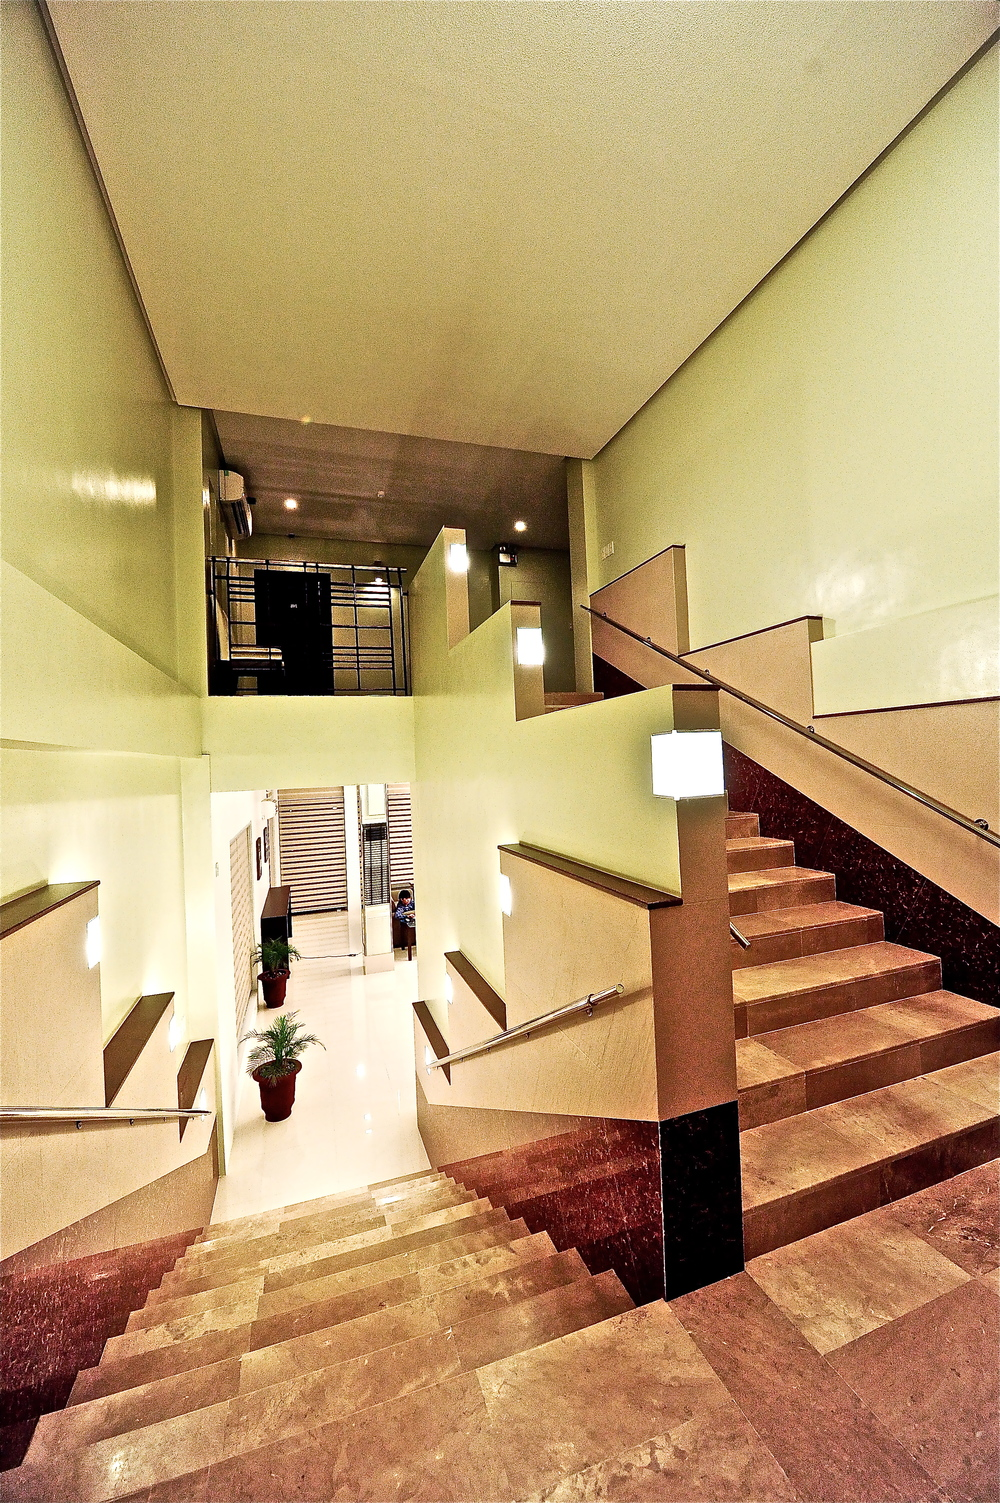 Casablance Suites - main stairs.jpg